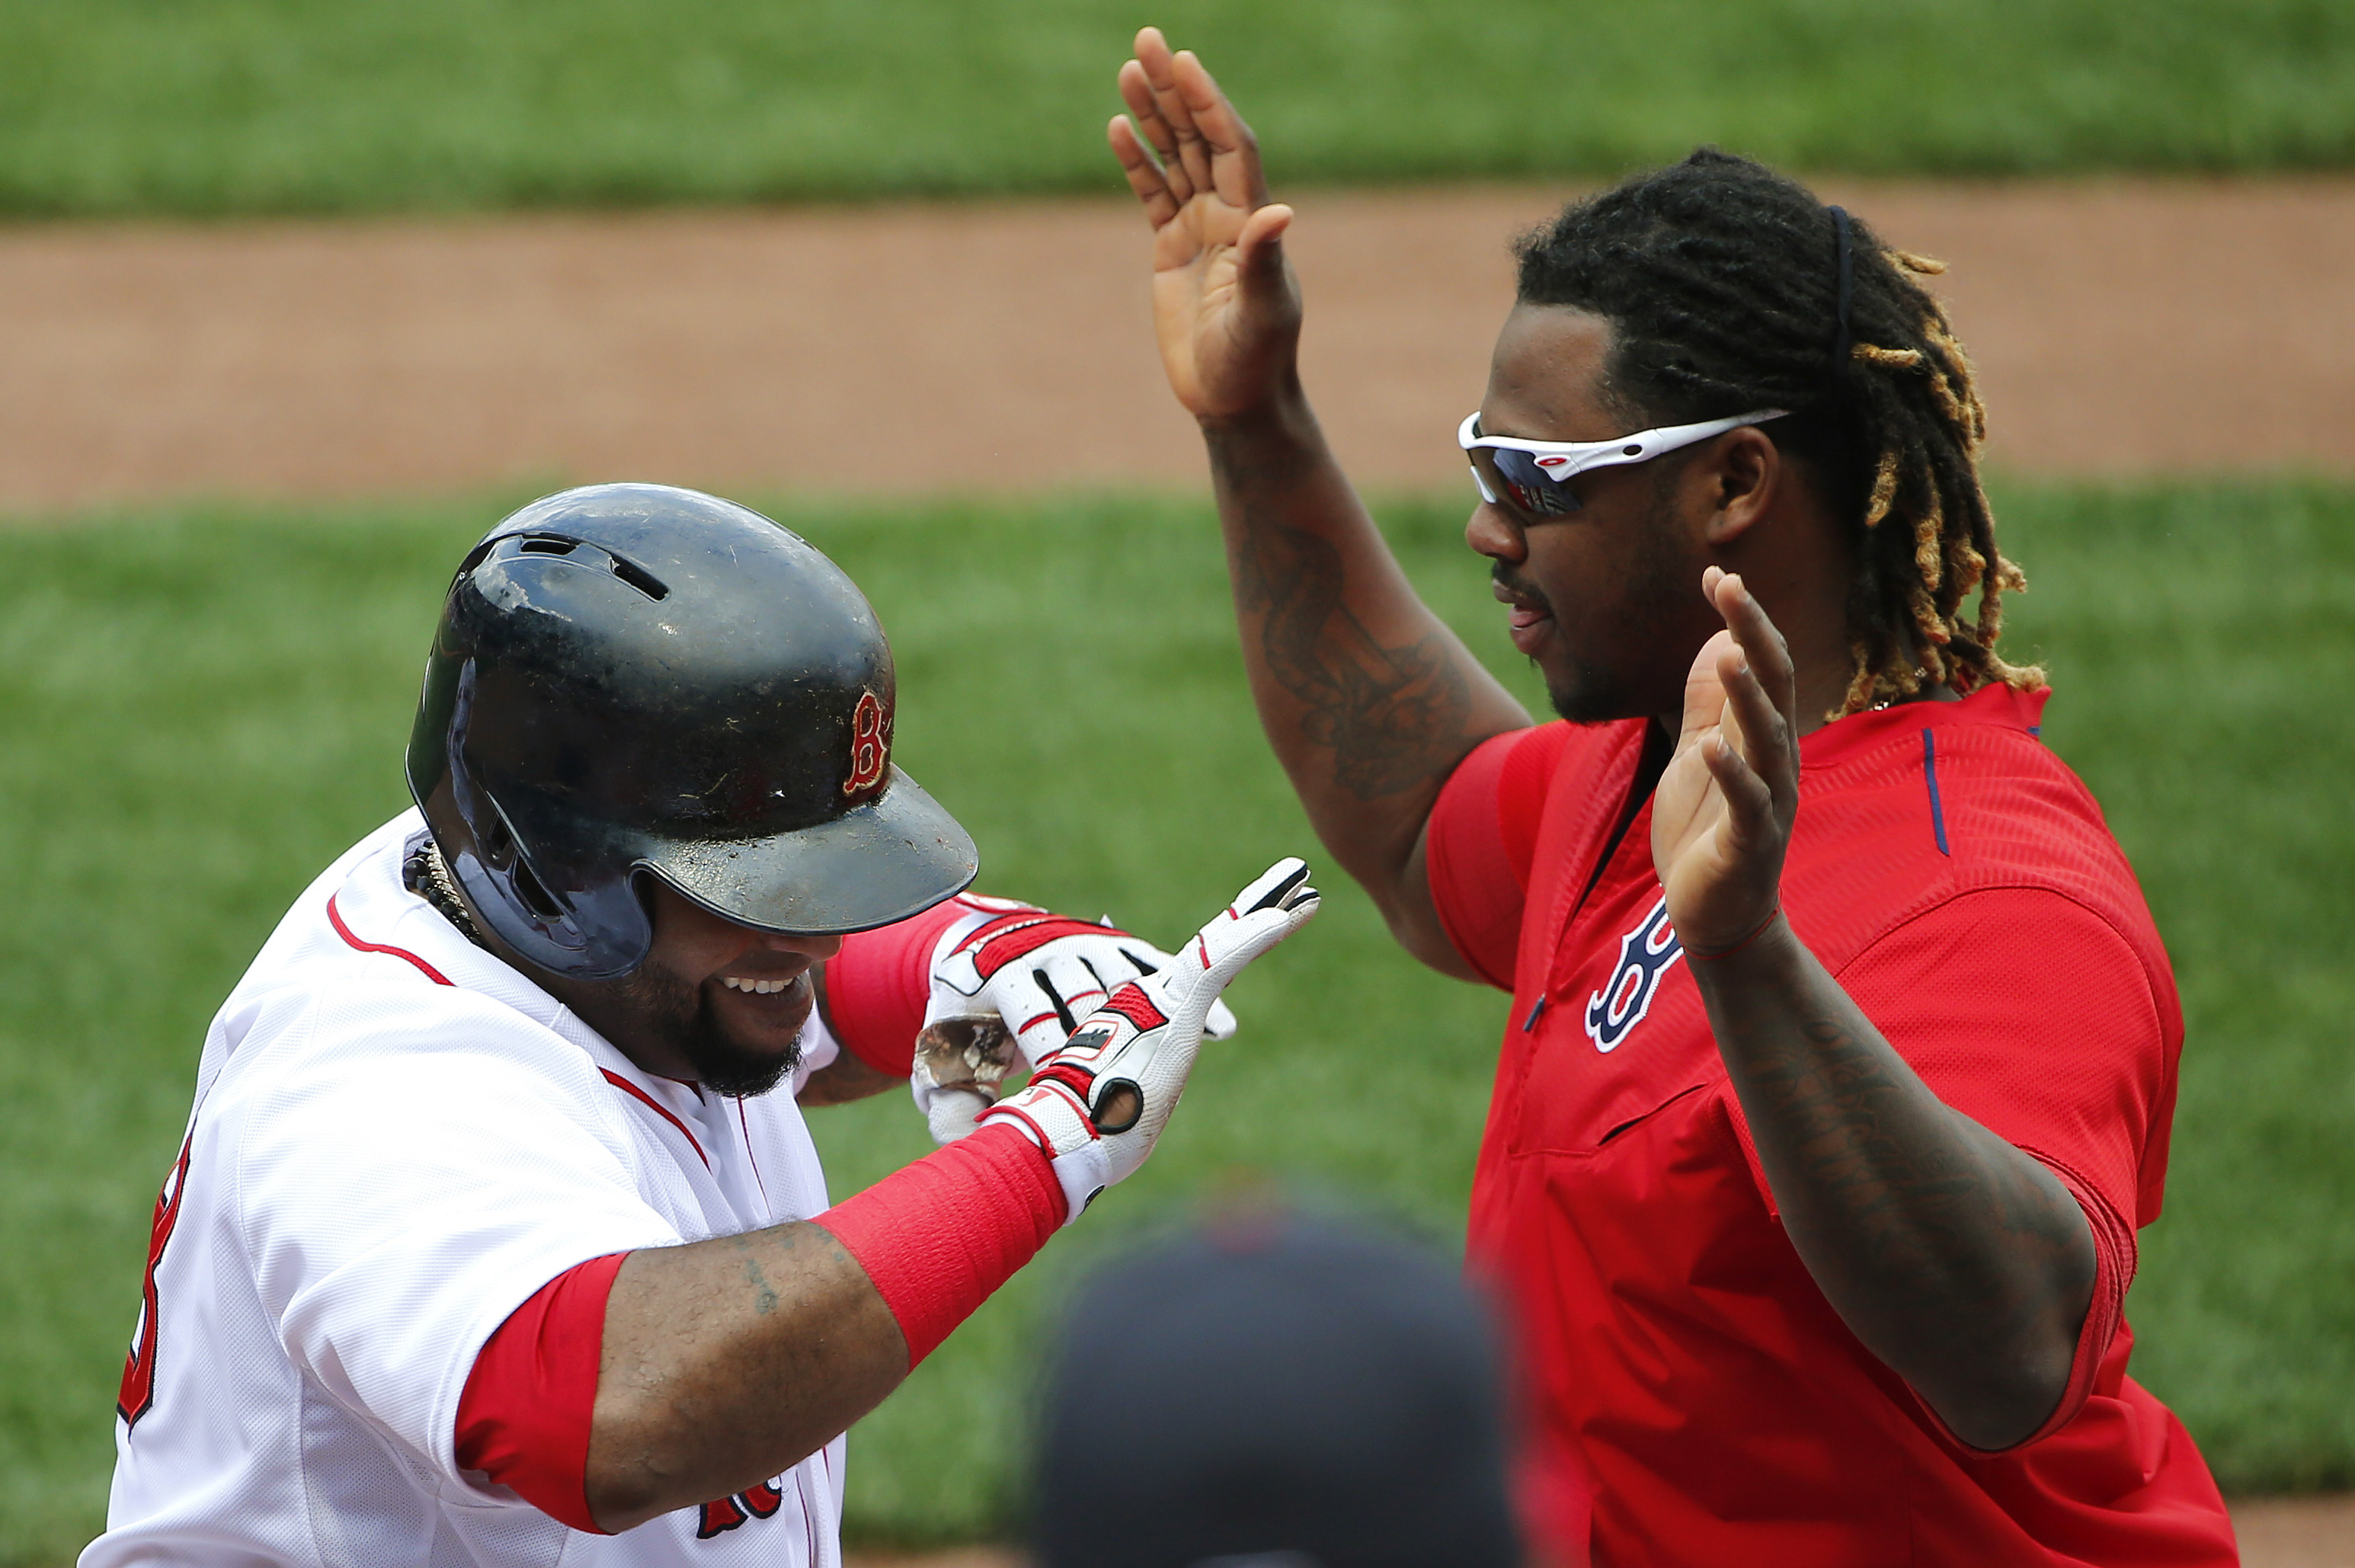 Boston Red Sox's Pablo Sandoval is greeted at the dugout by teammate Hanley Ramirez after his home run against the Seattle Mariners during the second inning of a baseball game at Fenway Park in Boston Saturday, Aug. 15, 2015.  (AP Photo/Winslow Townson)